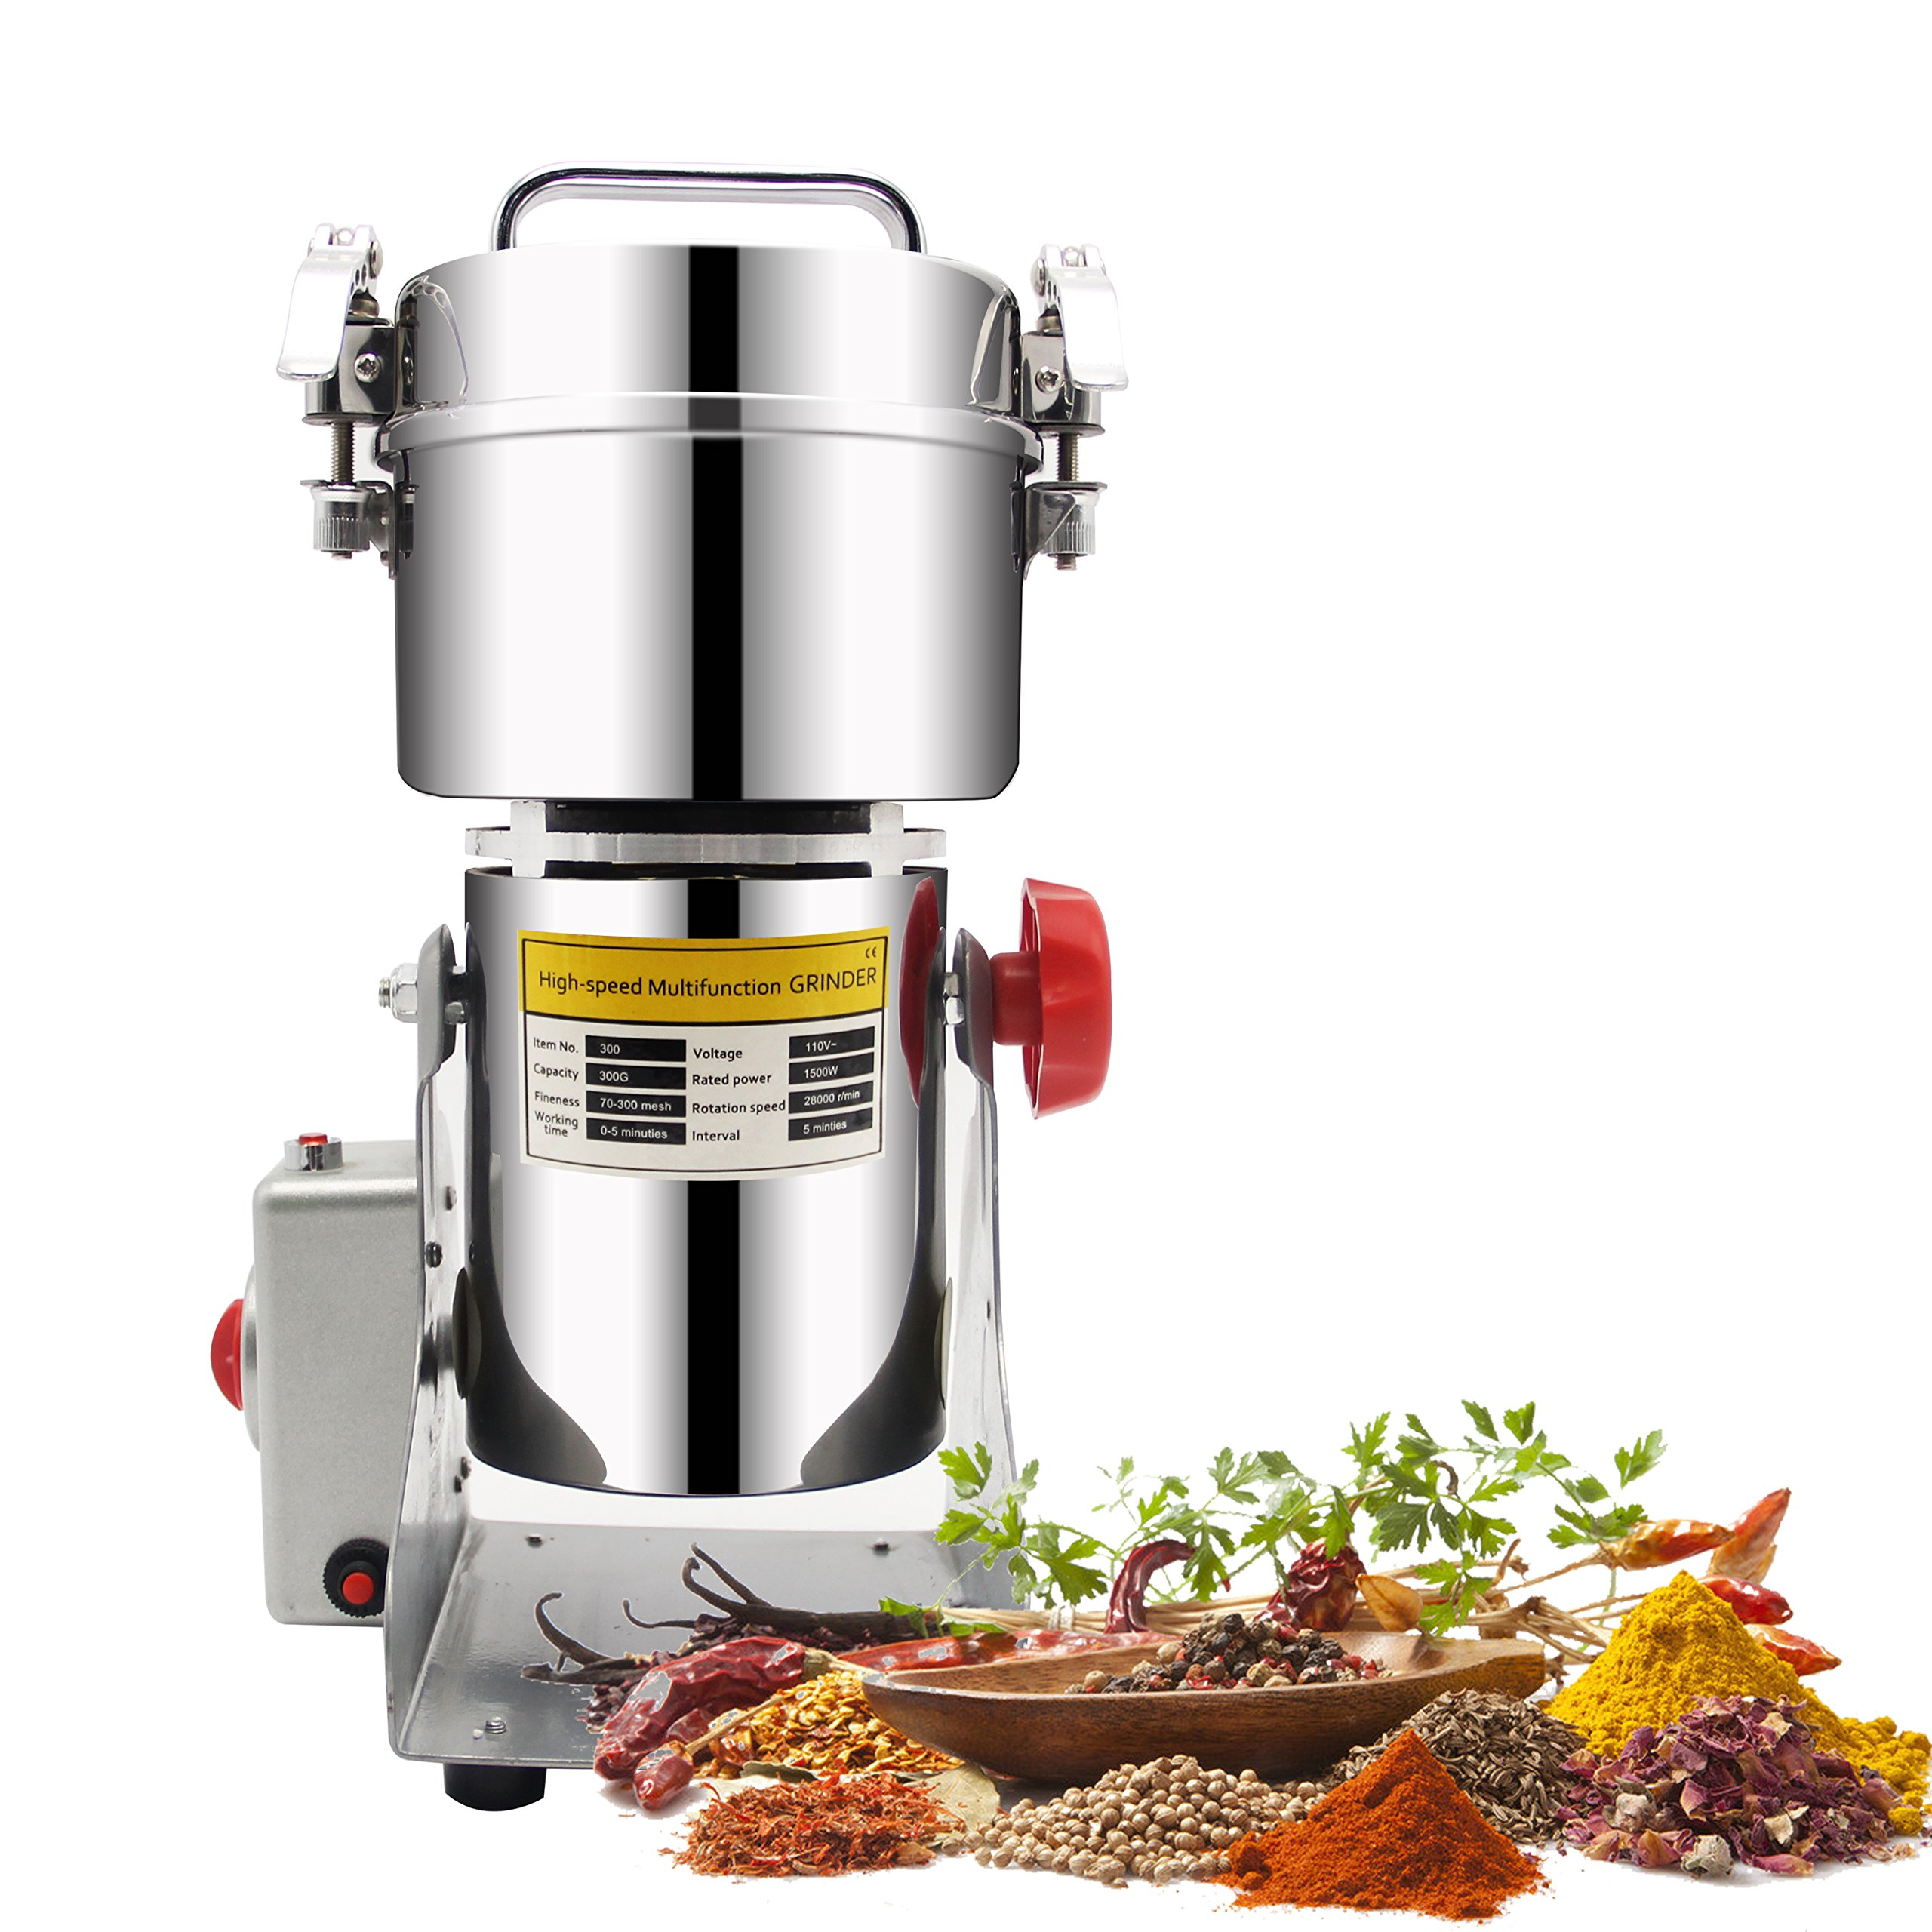 300g stainless steel electric high-speed grain grinder mill family medicial powder machine commercial Cereals grain Mill Herb Grinder,pulverizer 220v gift for mom, wife